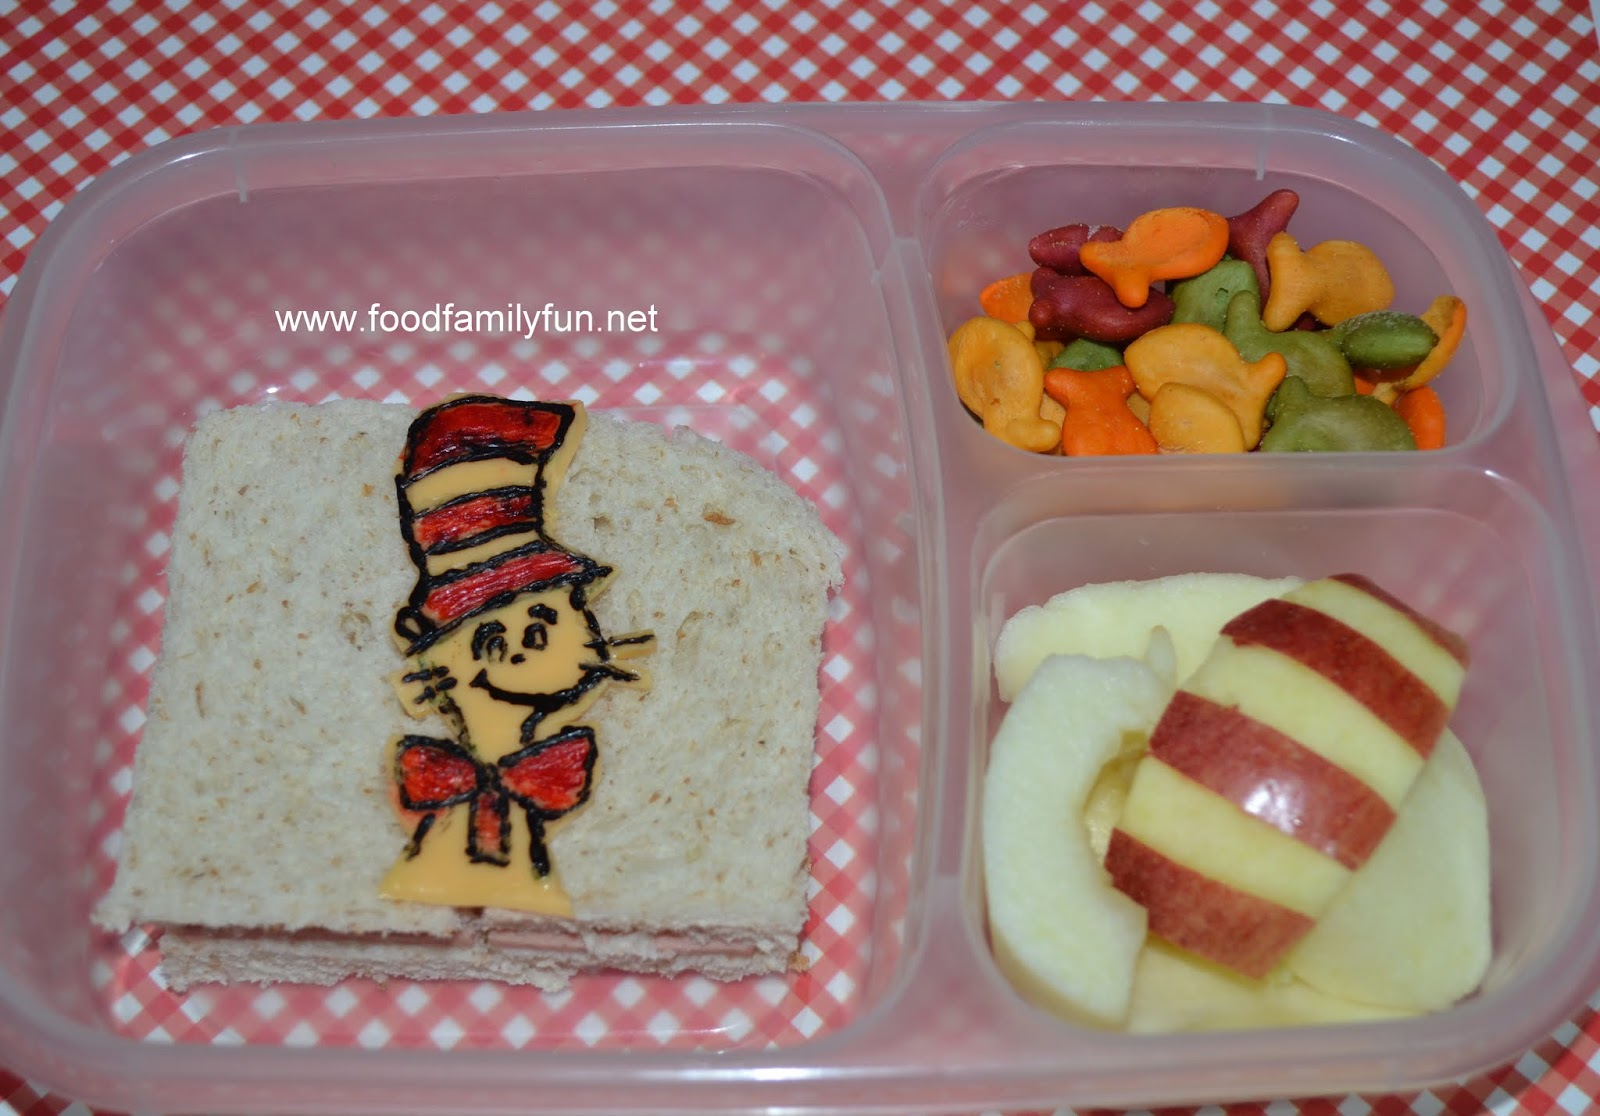 Cat In The Hat lunch - Cheese drawing